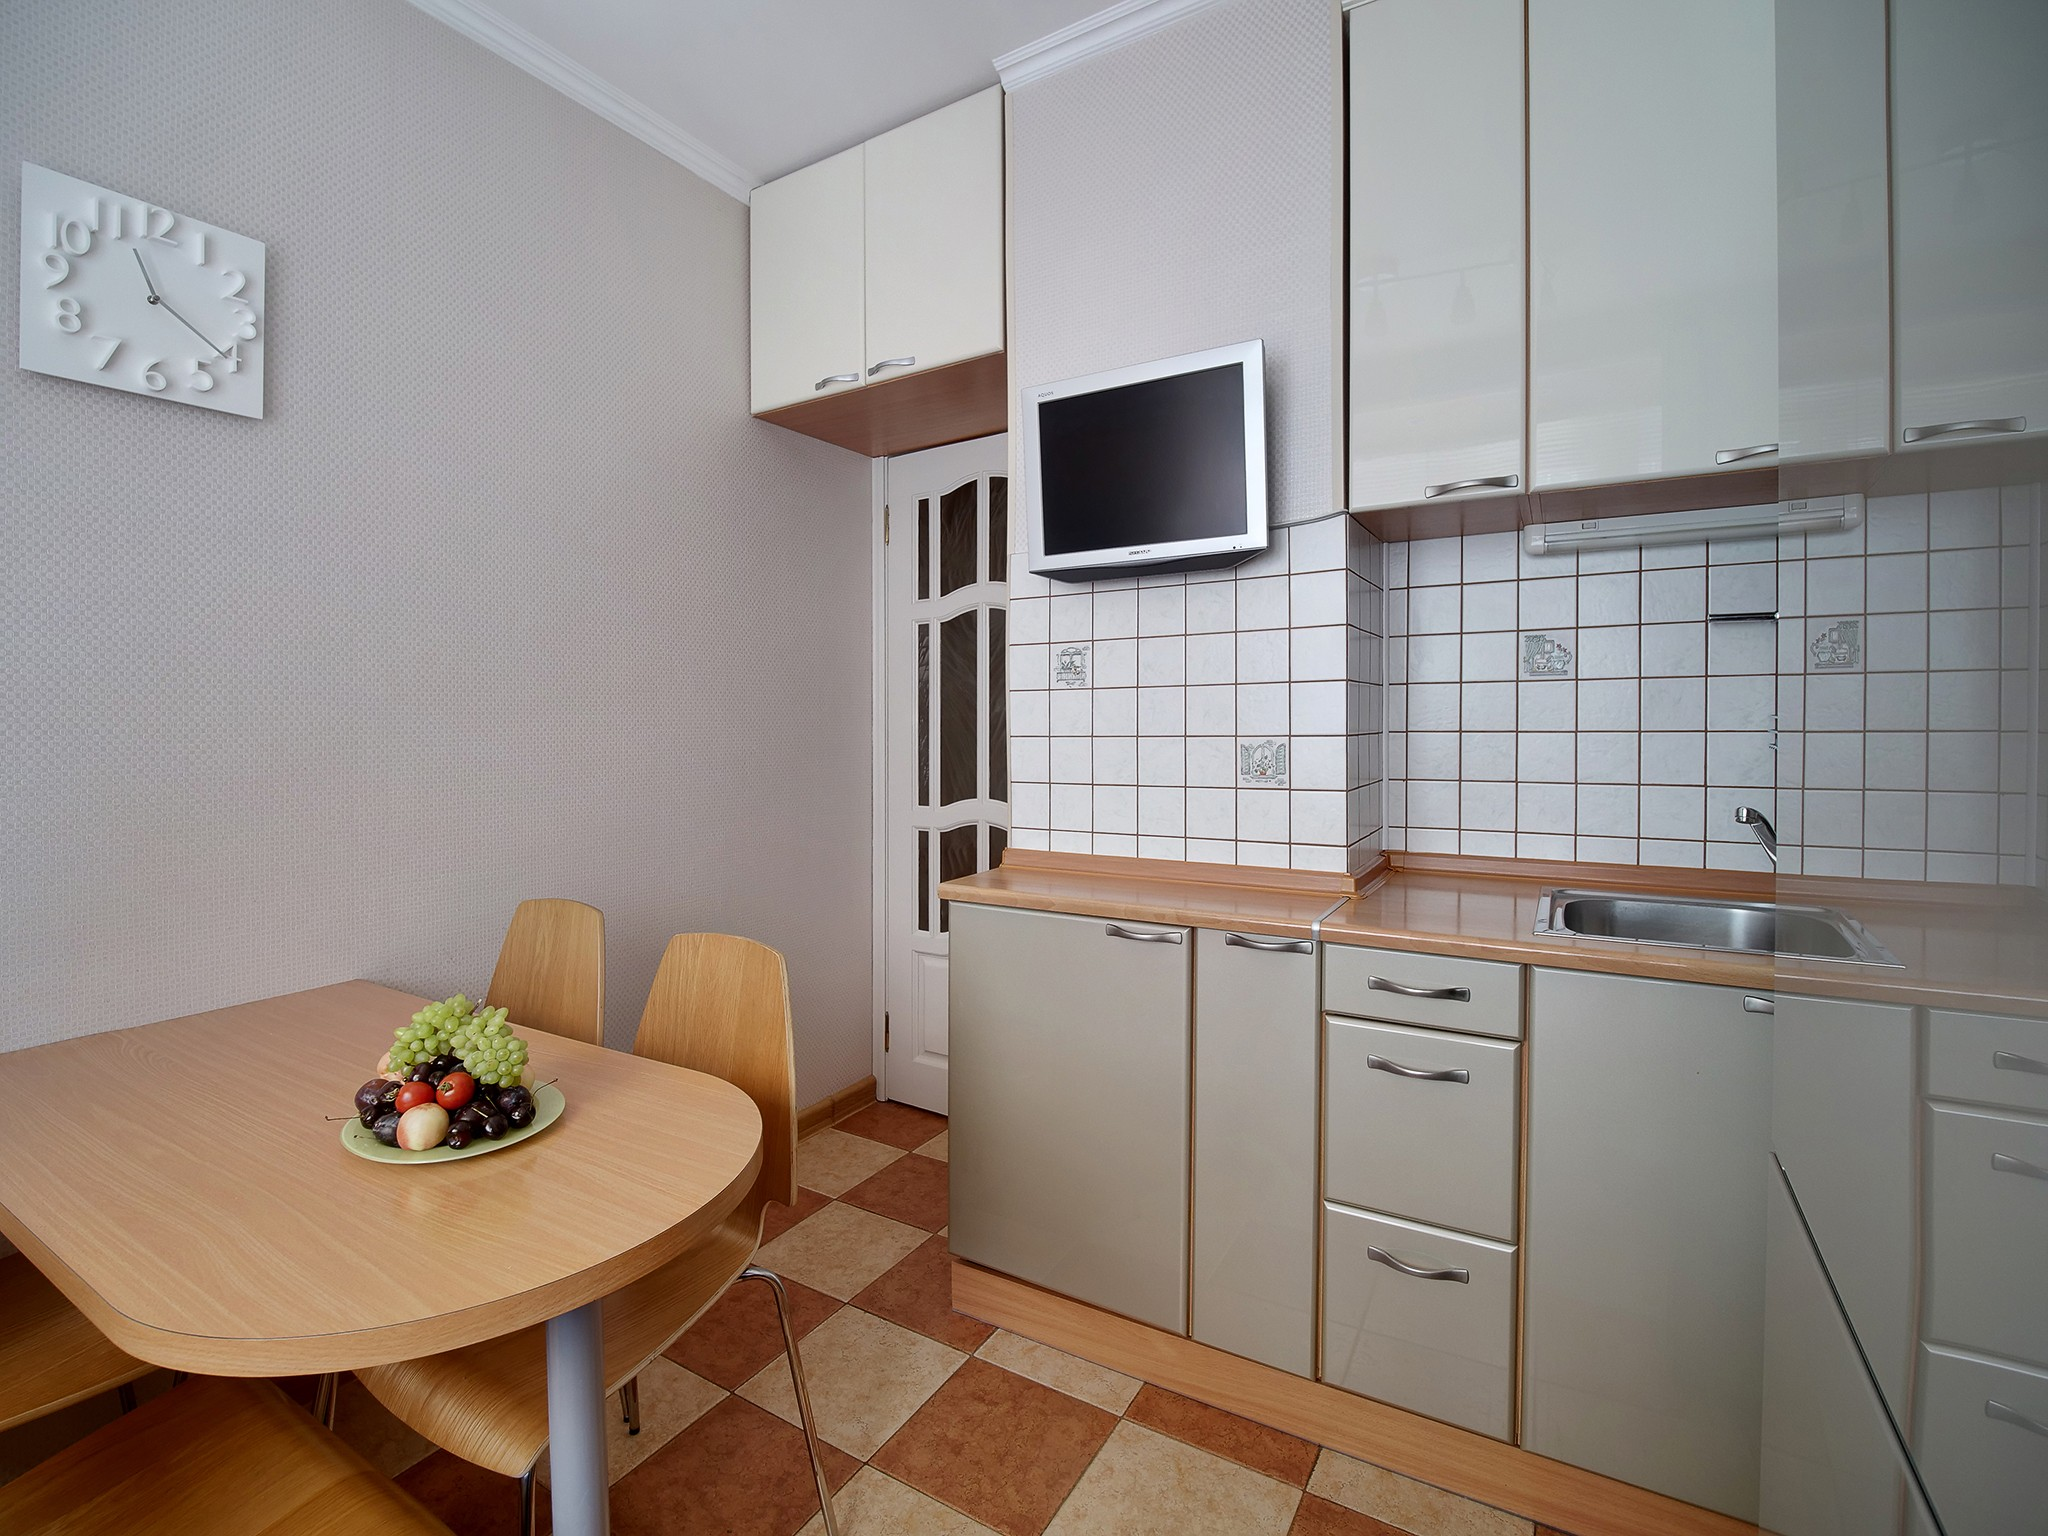 How many photos do you need to sell a Moscow apartment?